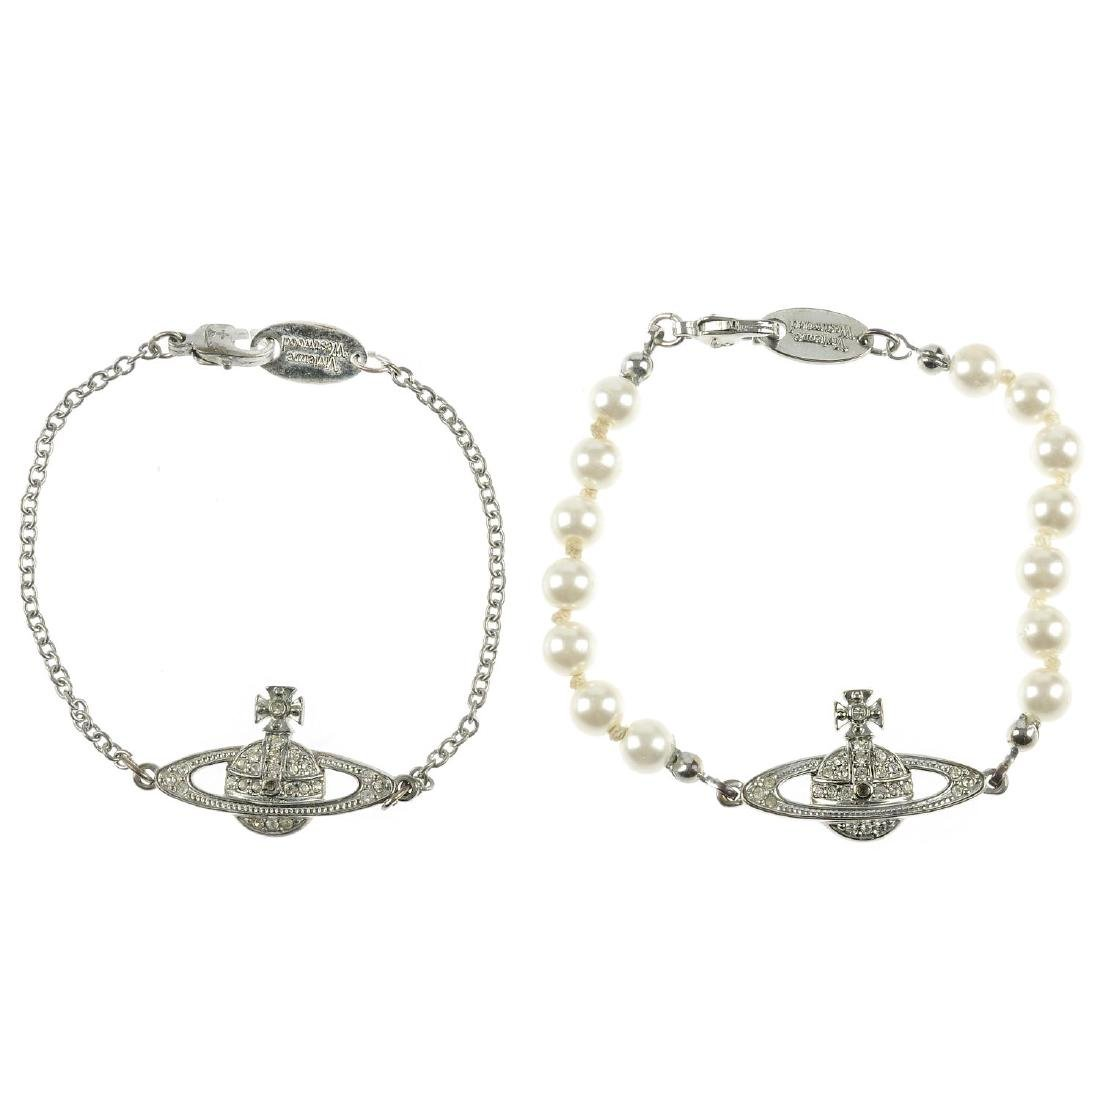 VIVIENNE WESTWOOD - two bracelets. The first a row of